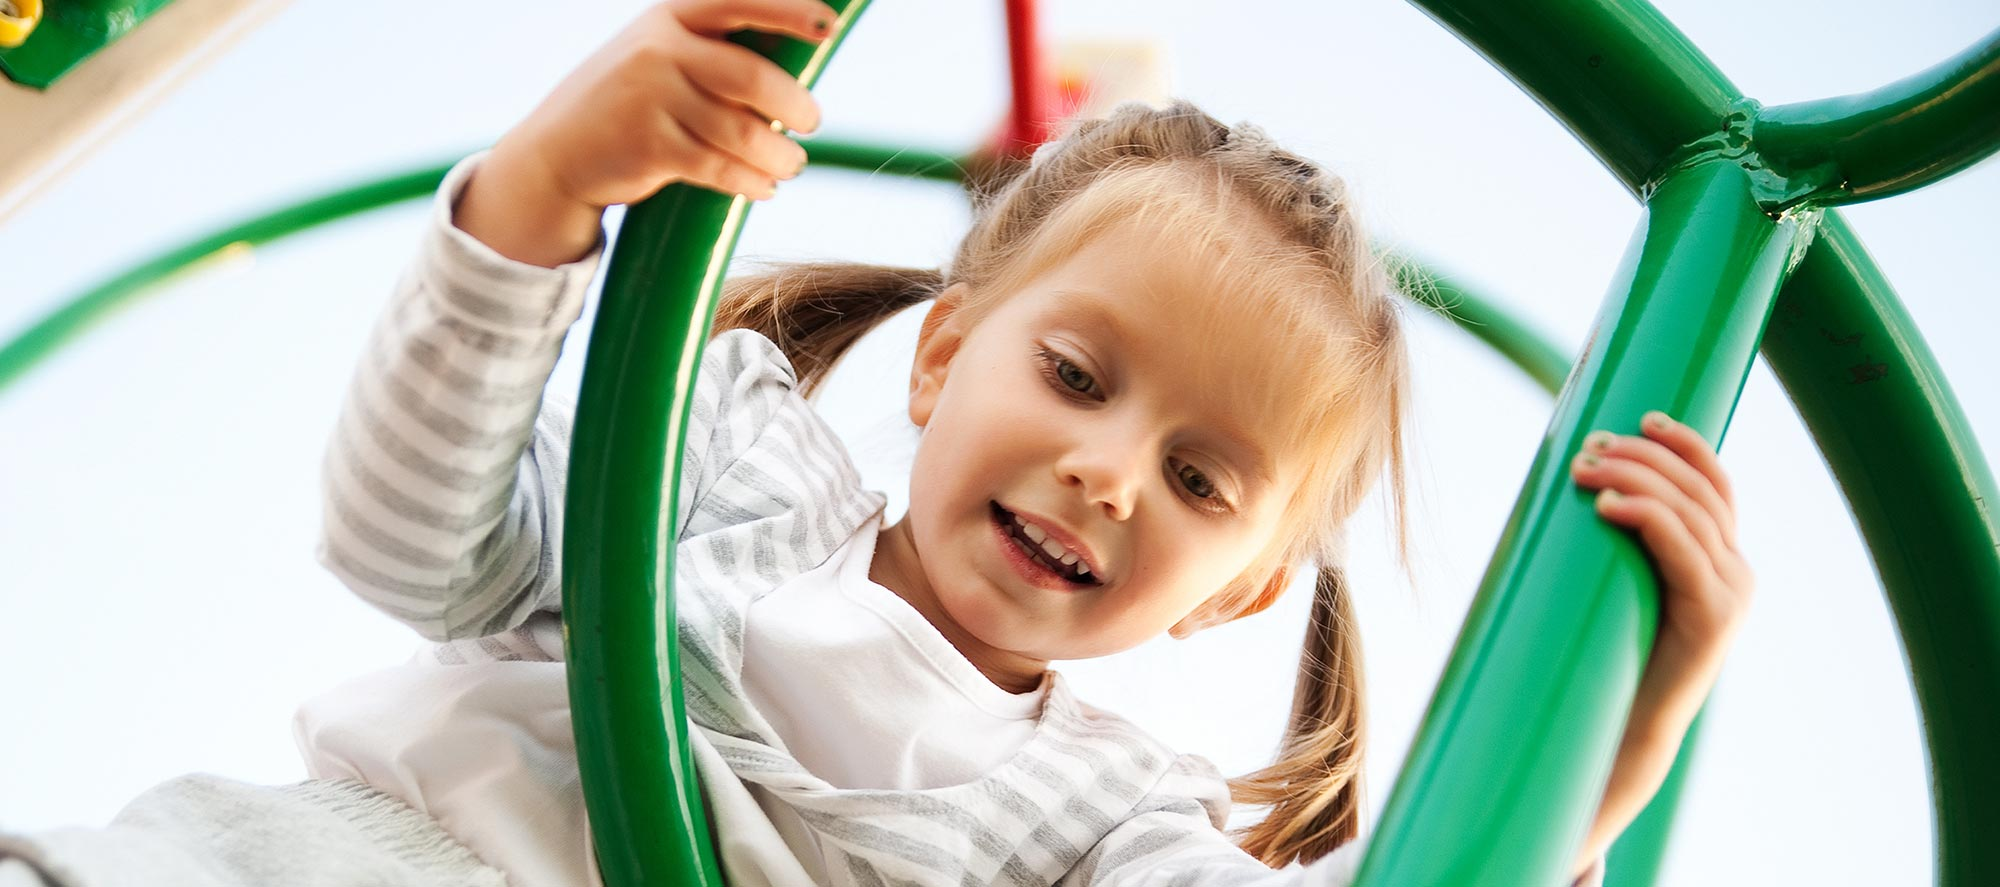 Girl on Playground - Pediatric Dentist in Madison, MS